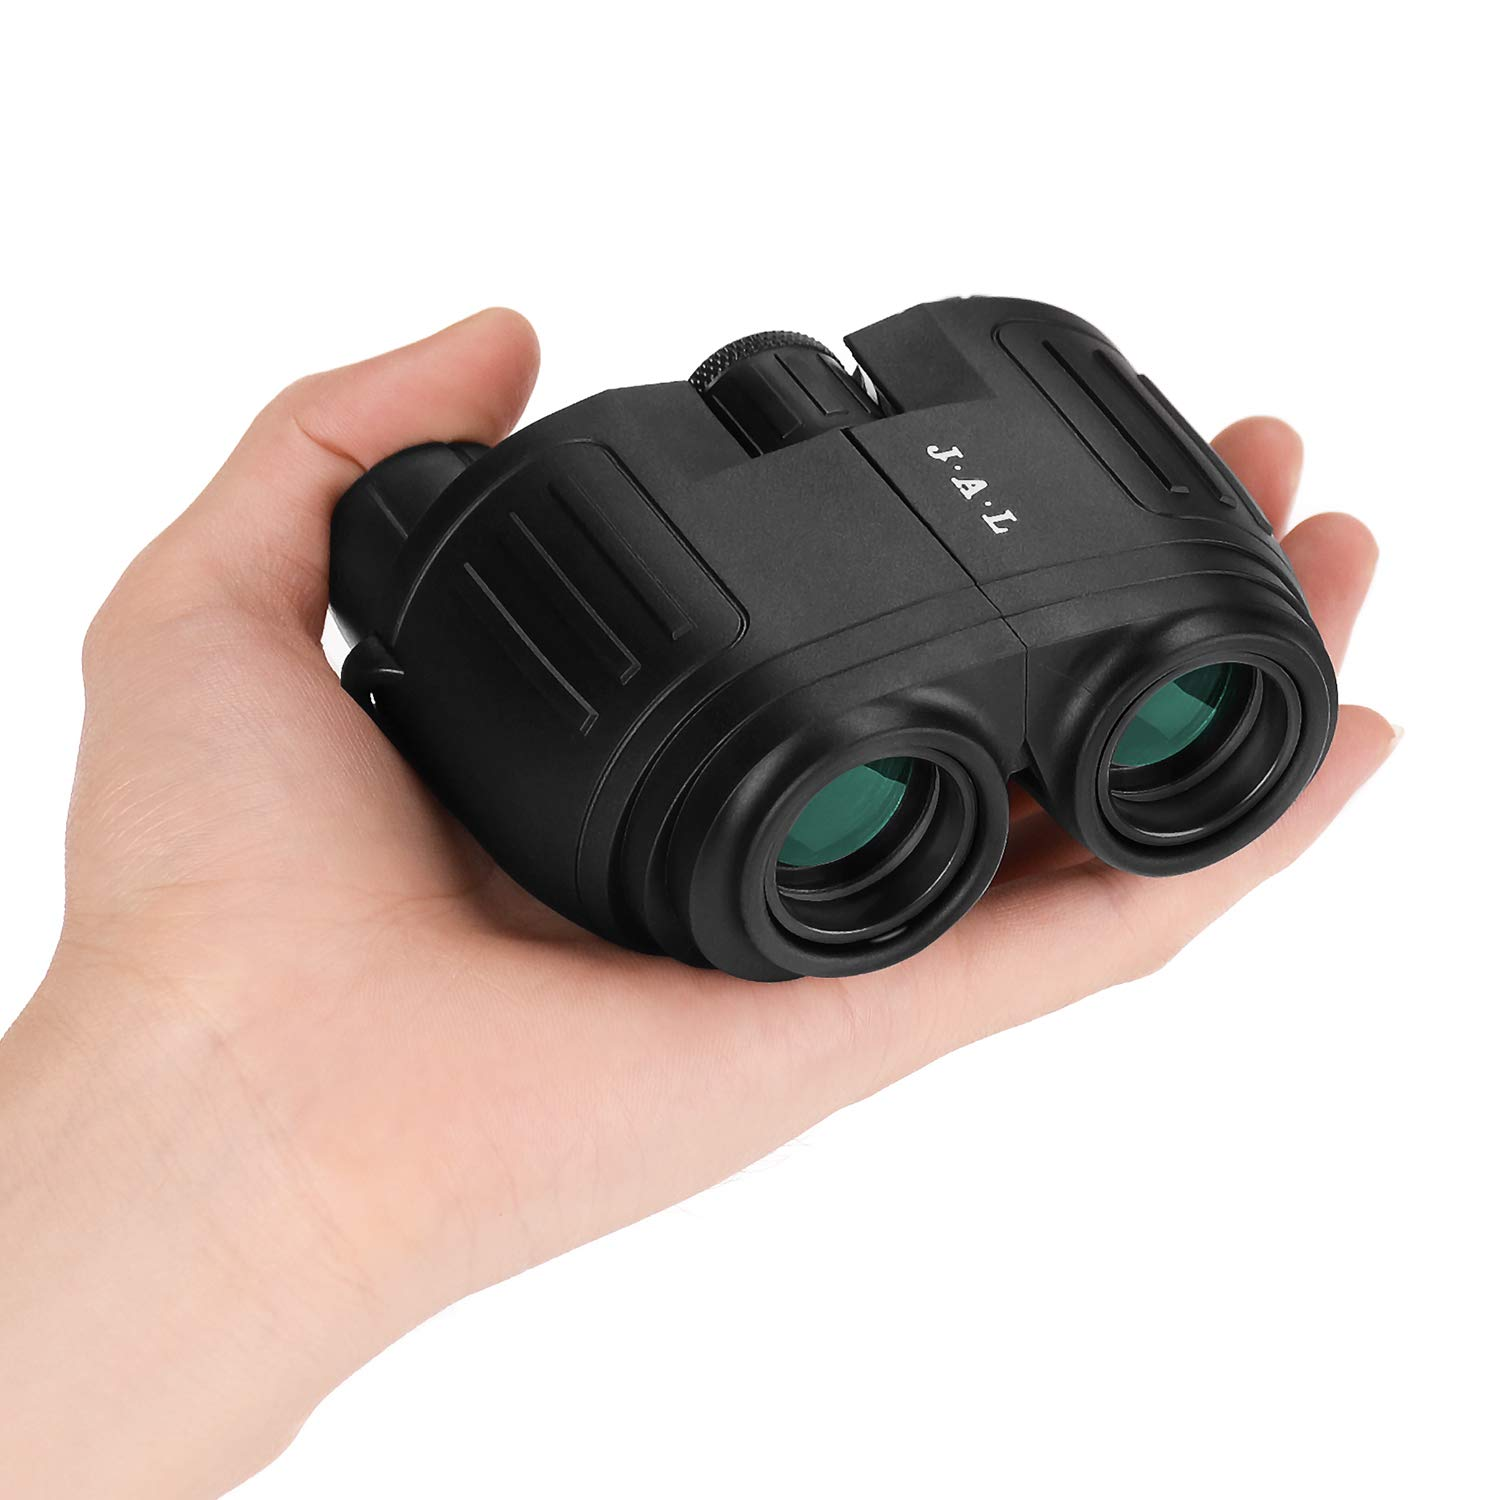 UncleHu 10X25 Binoculars for Adults and Kids Children Compact with Low Light Night Vision, High Power Waterproof Binocular Telescope Easy Focus for Bird Watching, Hunting, Travel, Stargazing, Football